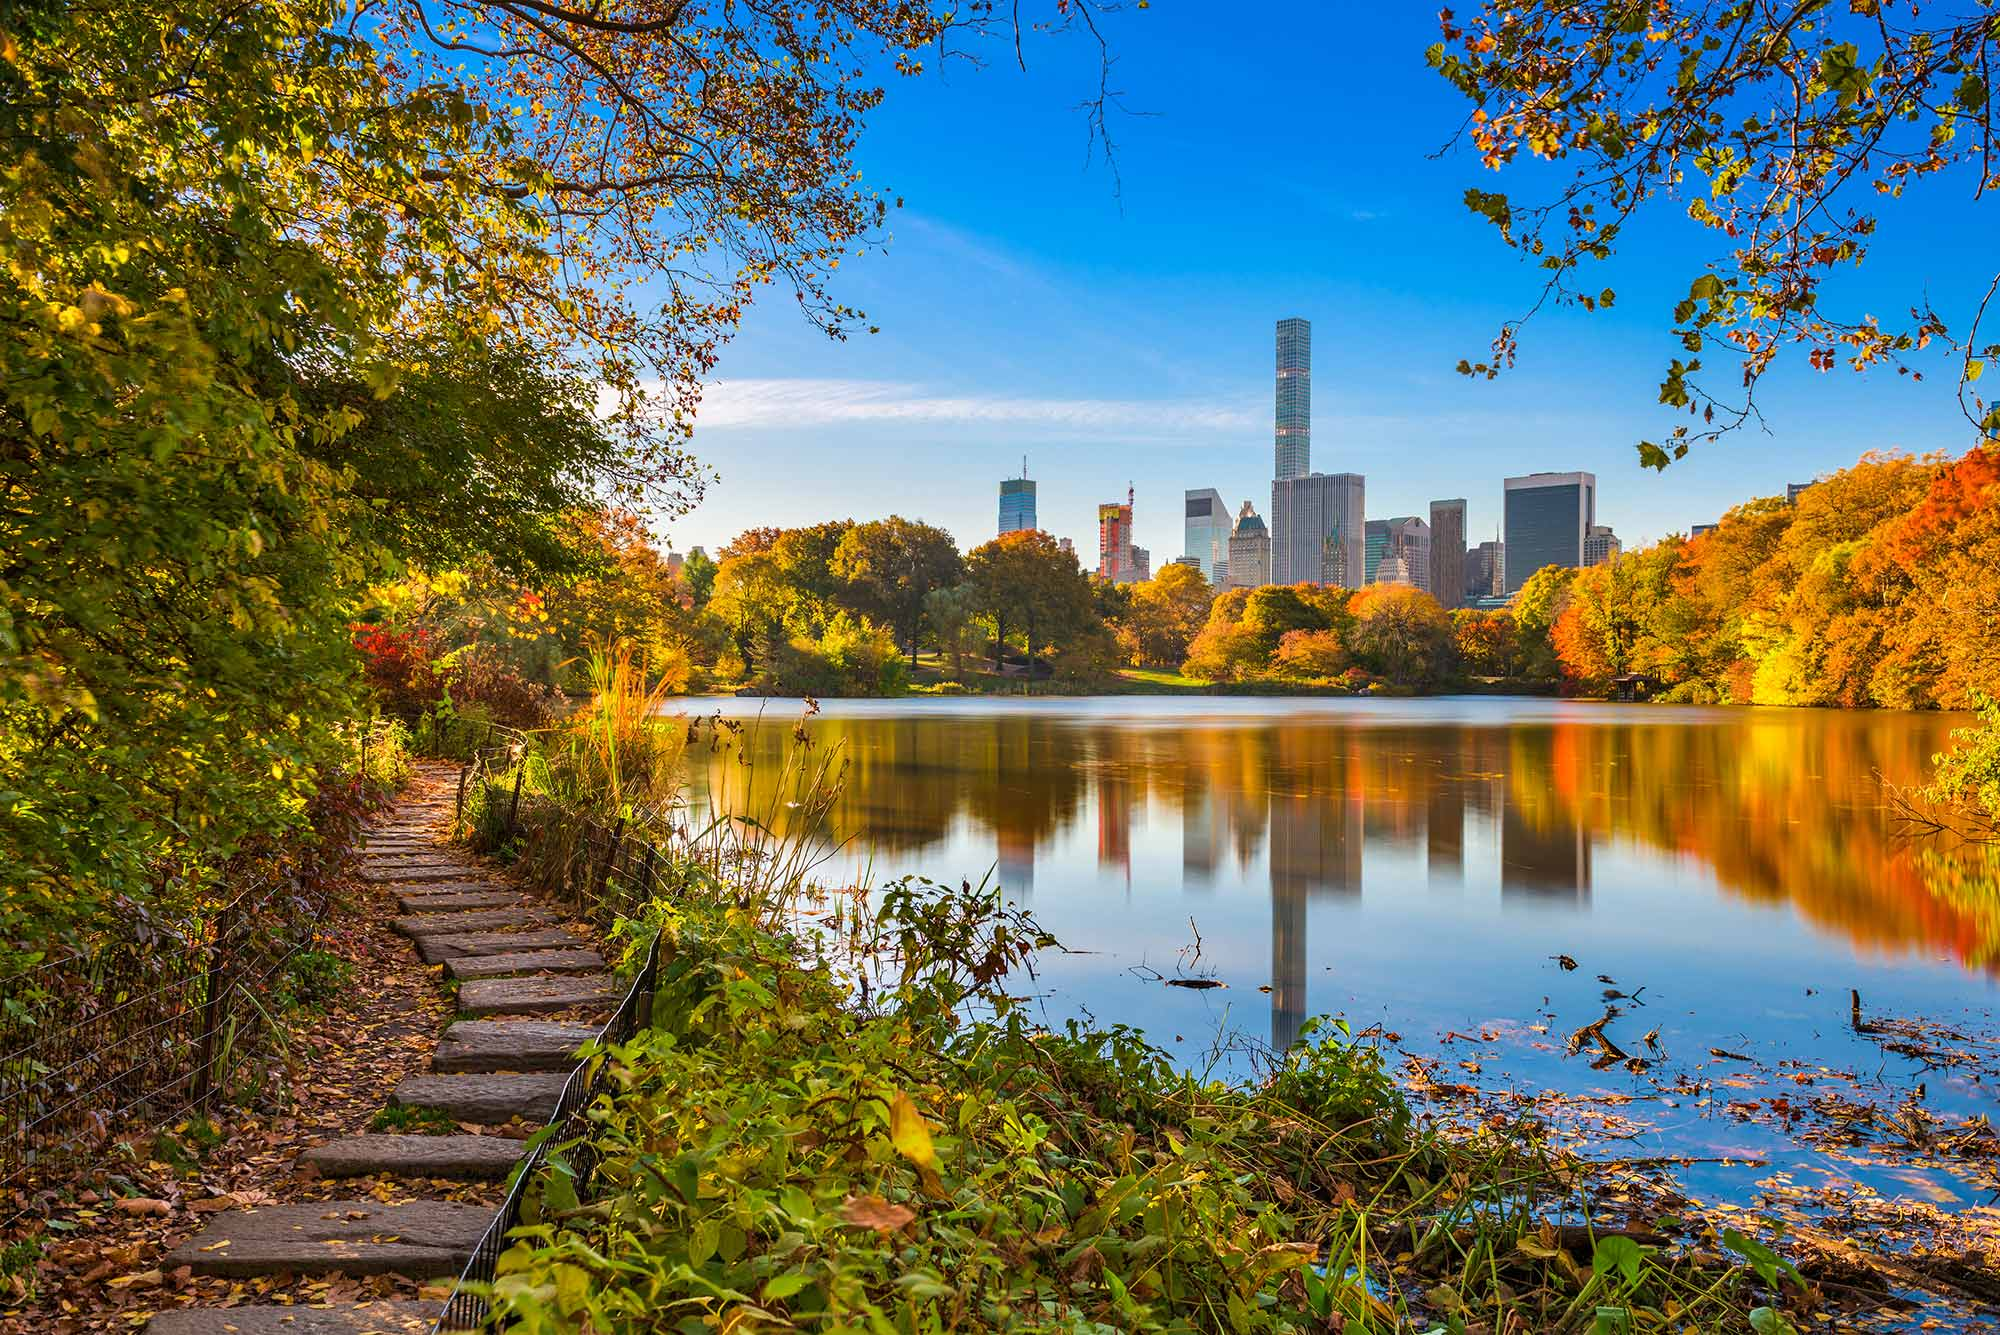 Autumnal colours in Central Park with the Jacqueline Kennedy Onassis Reservoir.